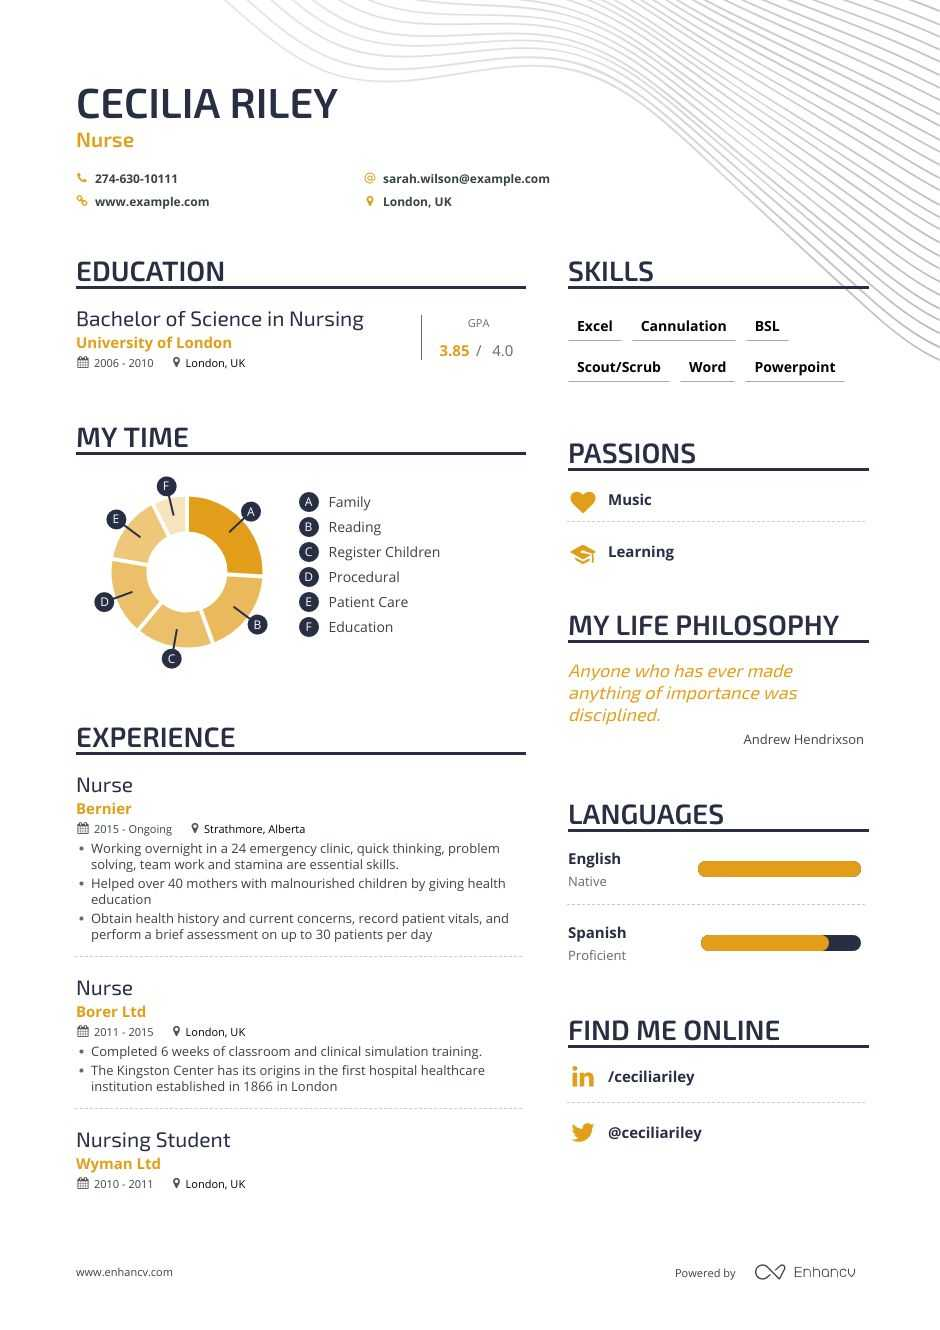 nurse resume example for enhancv nursing examples best short format marissa mayer special Resume Nursing Resume Examples 2020